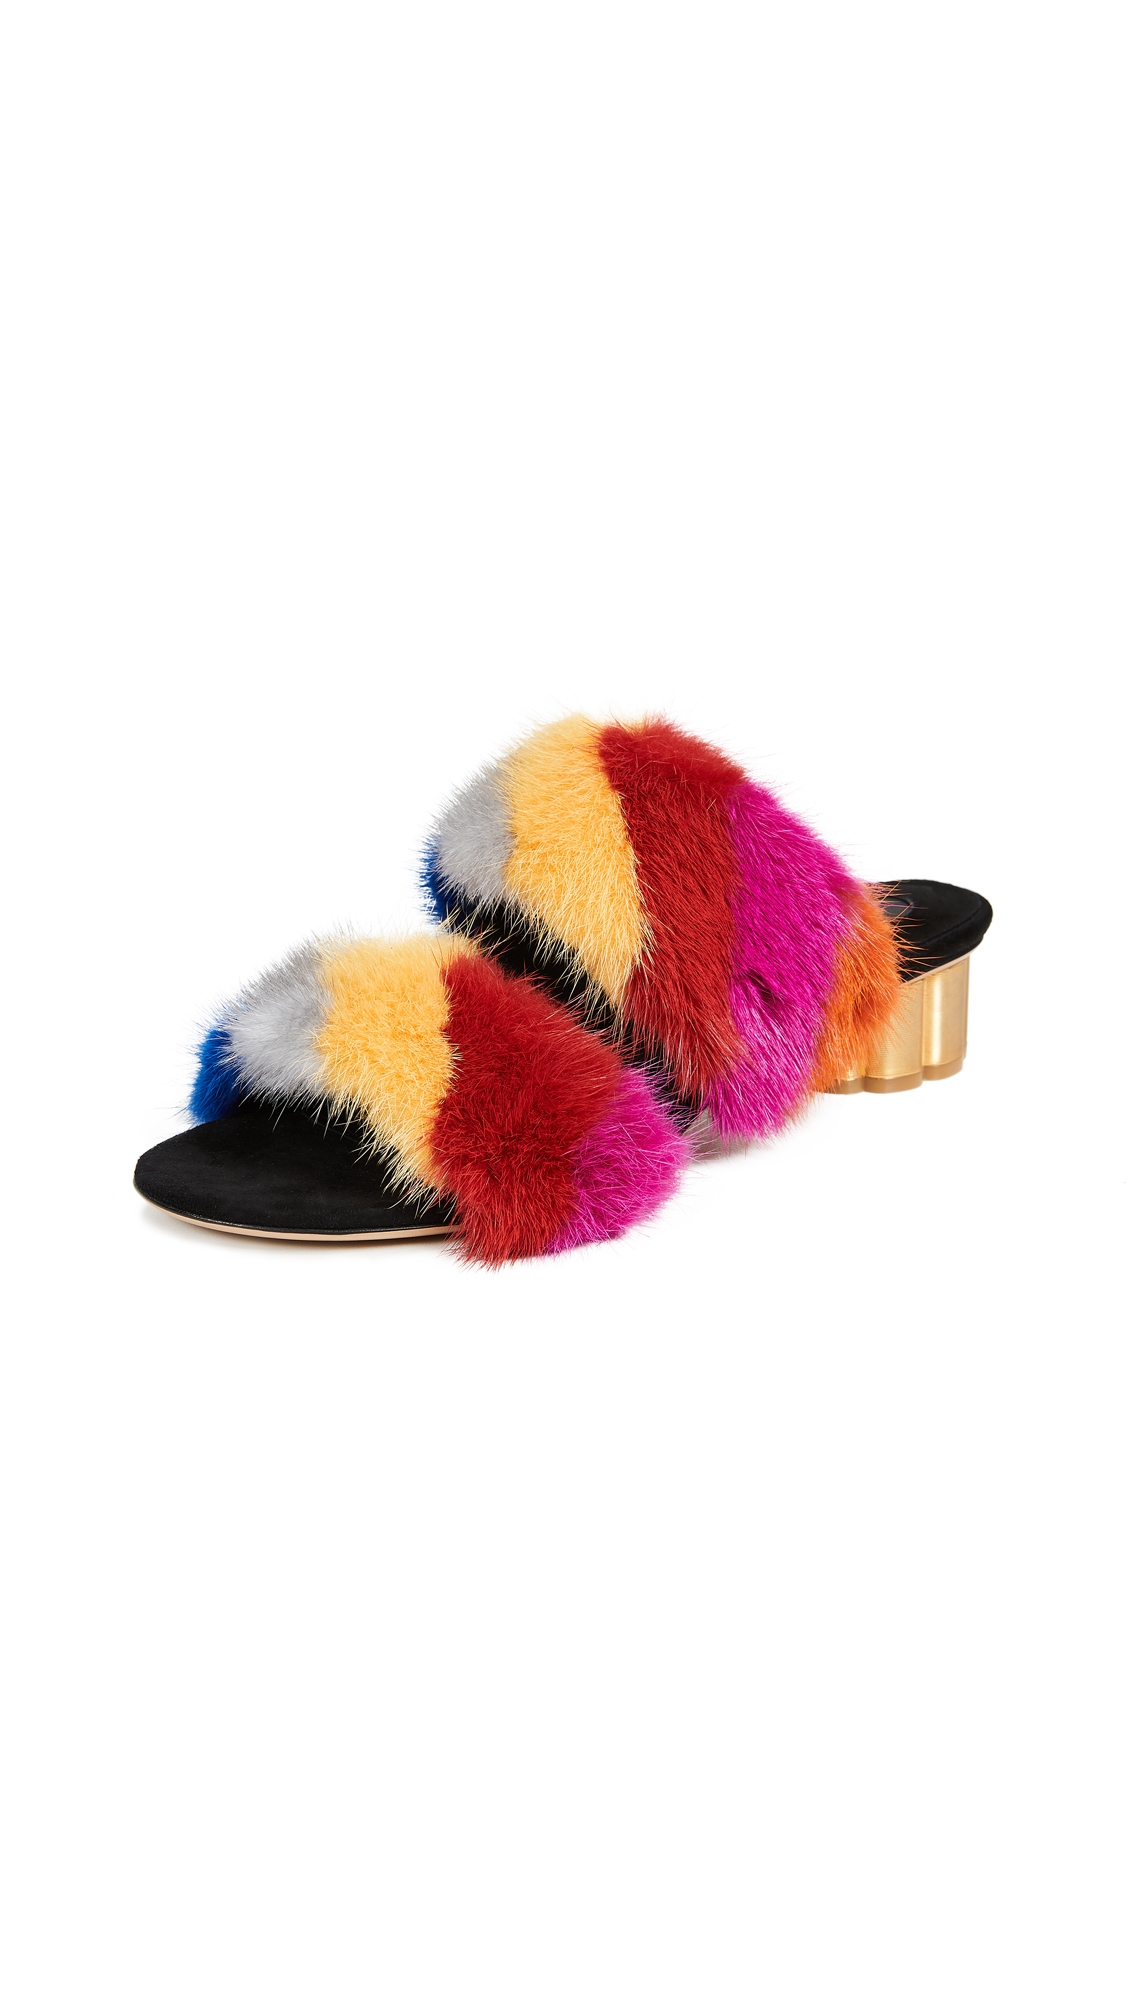 Salvatore Ferragamo Belluno Fur Slides - Rainbow